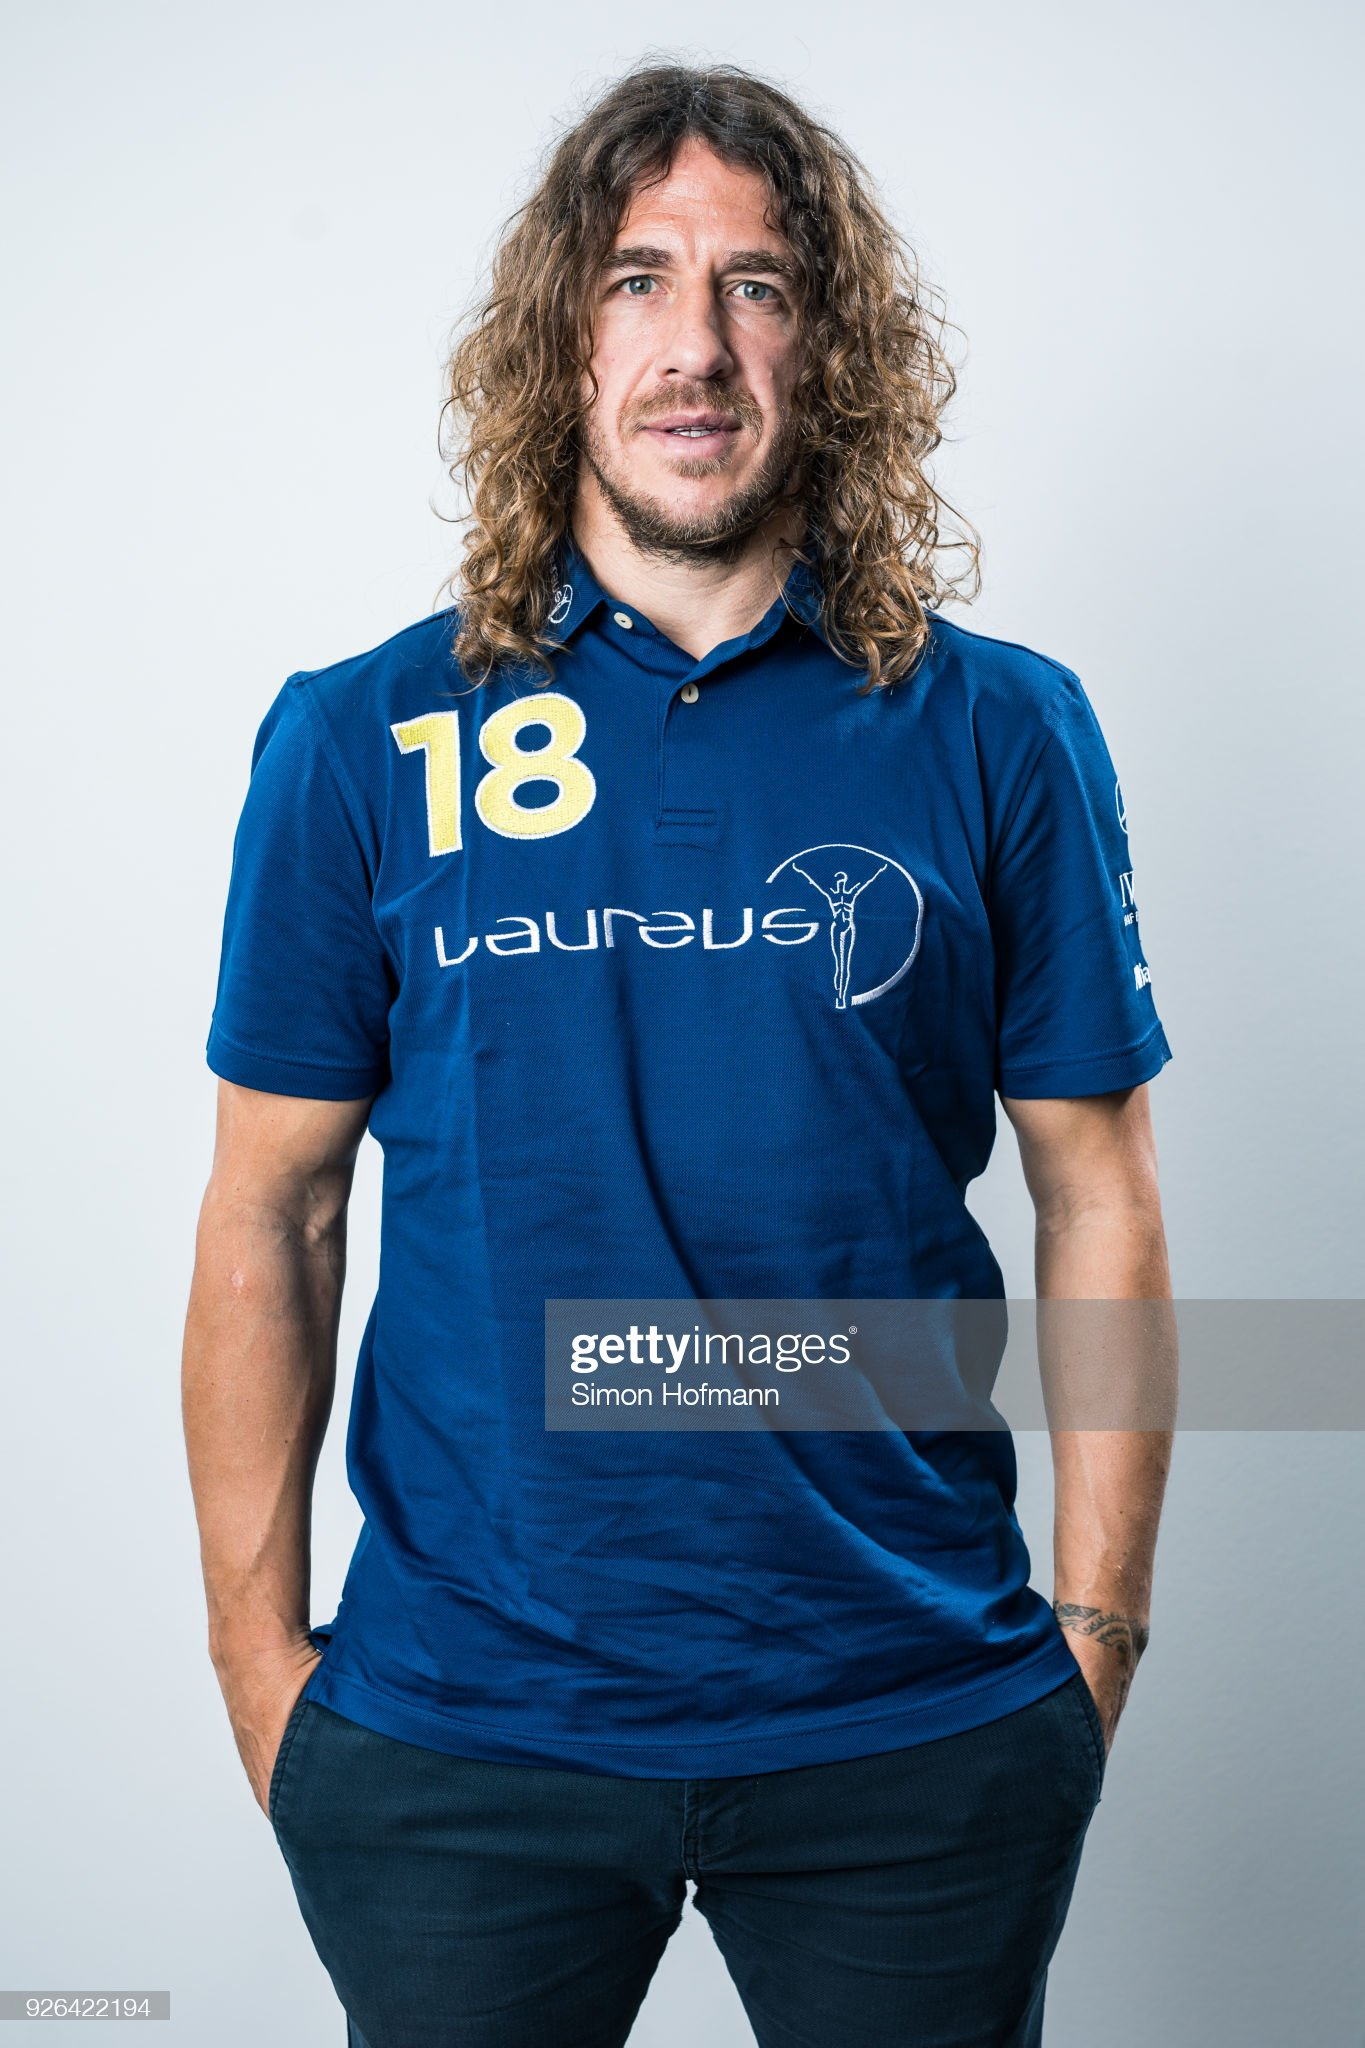 ¿Cuánto mide Carles Puyol? - Altura - Real height Laureus-academy-member-carles-puyol-poses-prior-to-the-2018-laureus-picture-id926422194?s=2048x2048